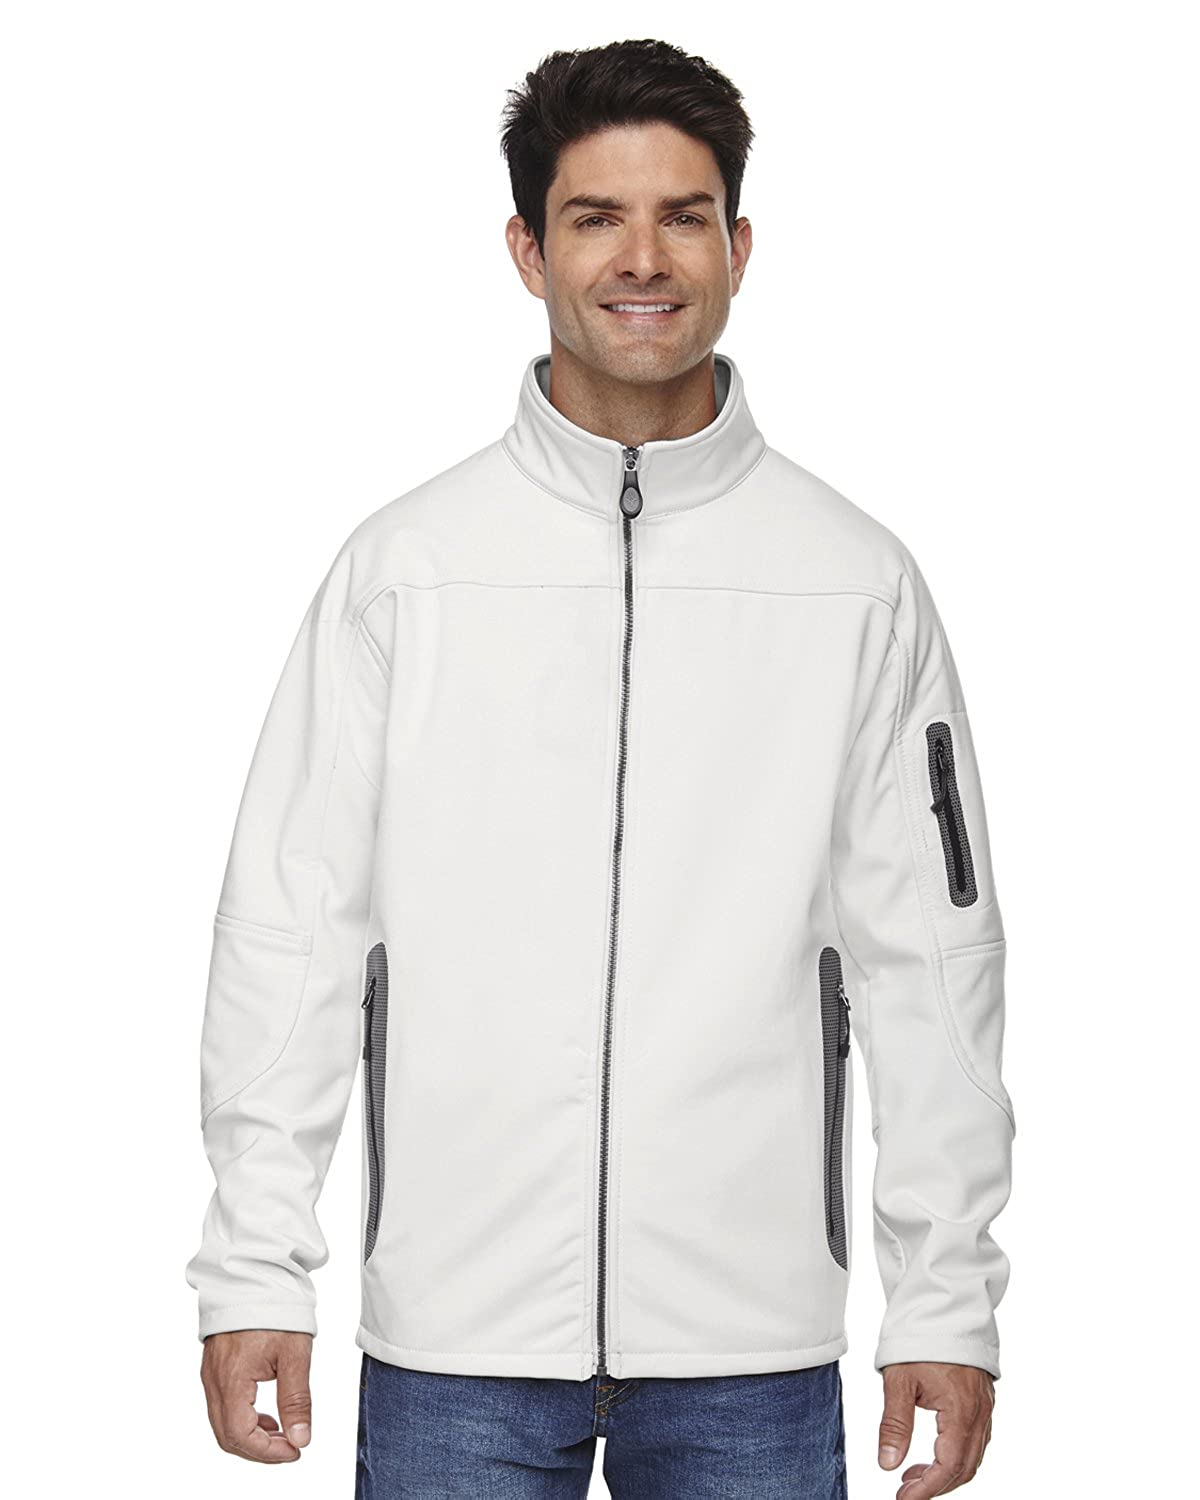 88138 Men's Three-Layer Soft Shell Technical Jacket Ash City - North End M10735